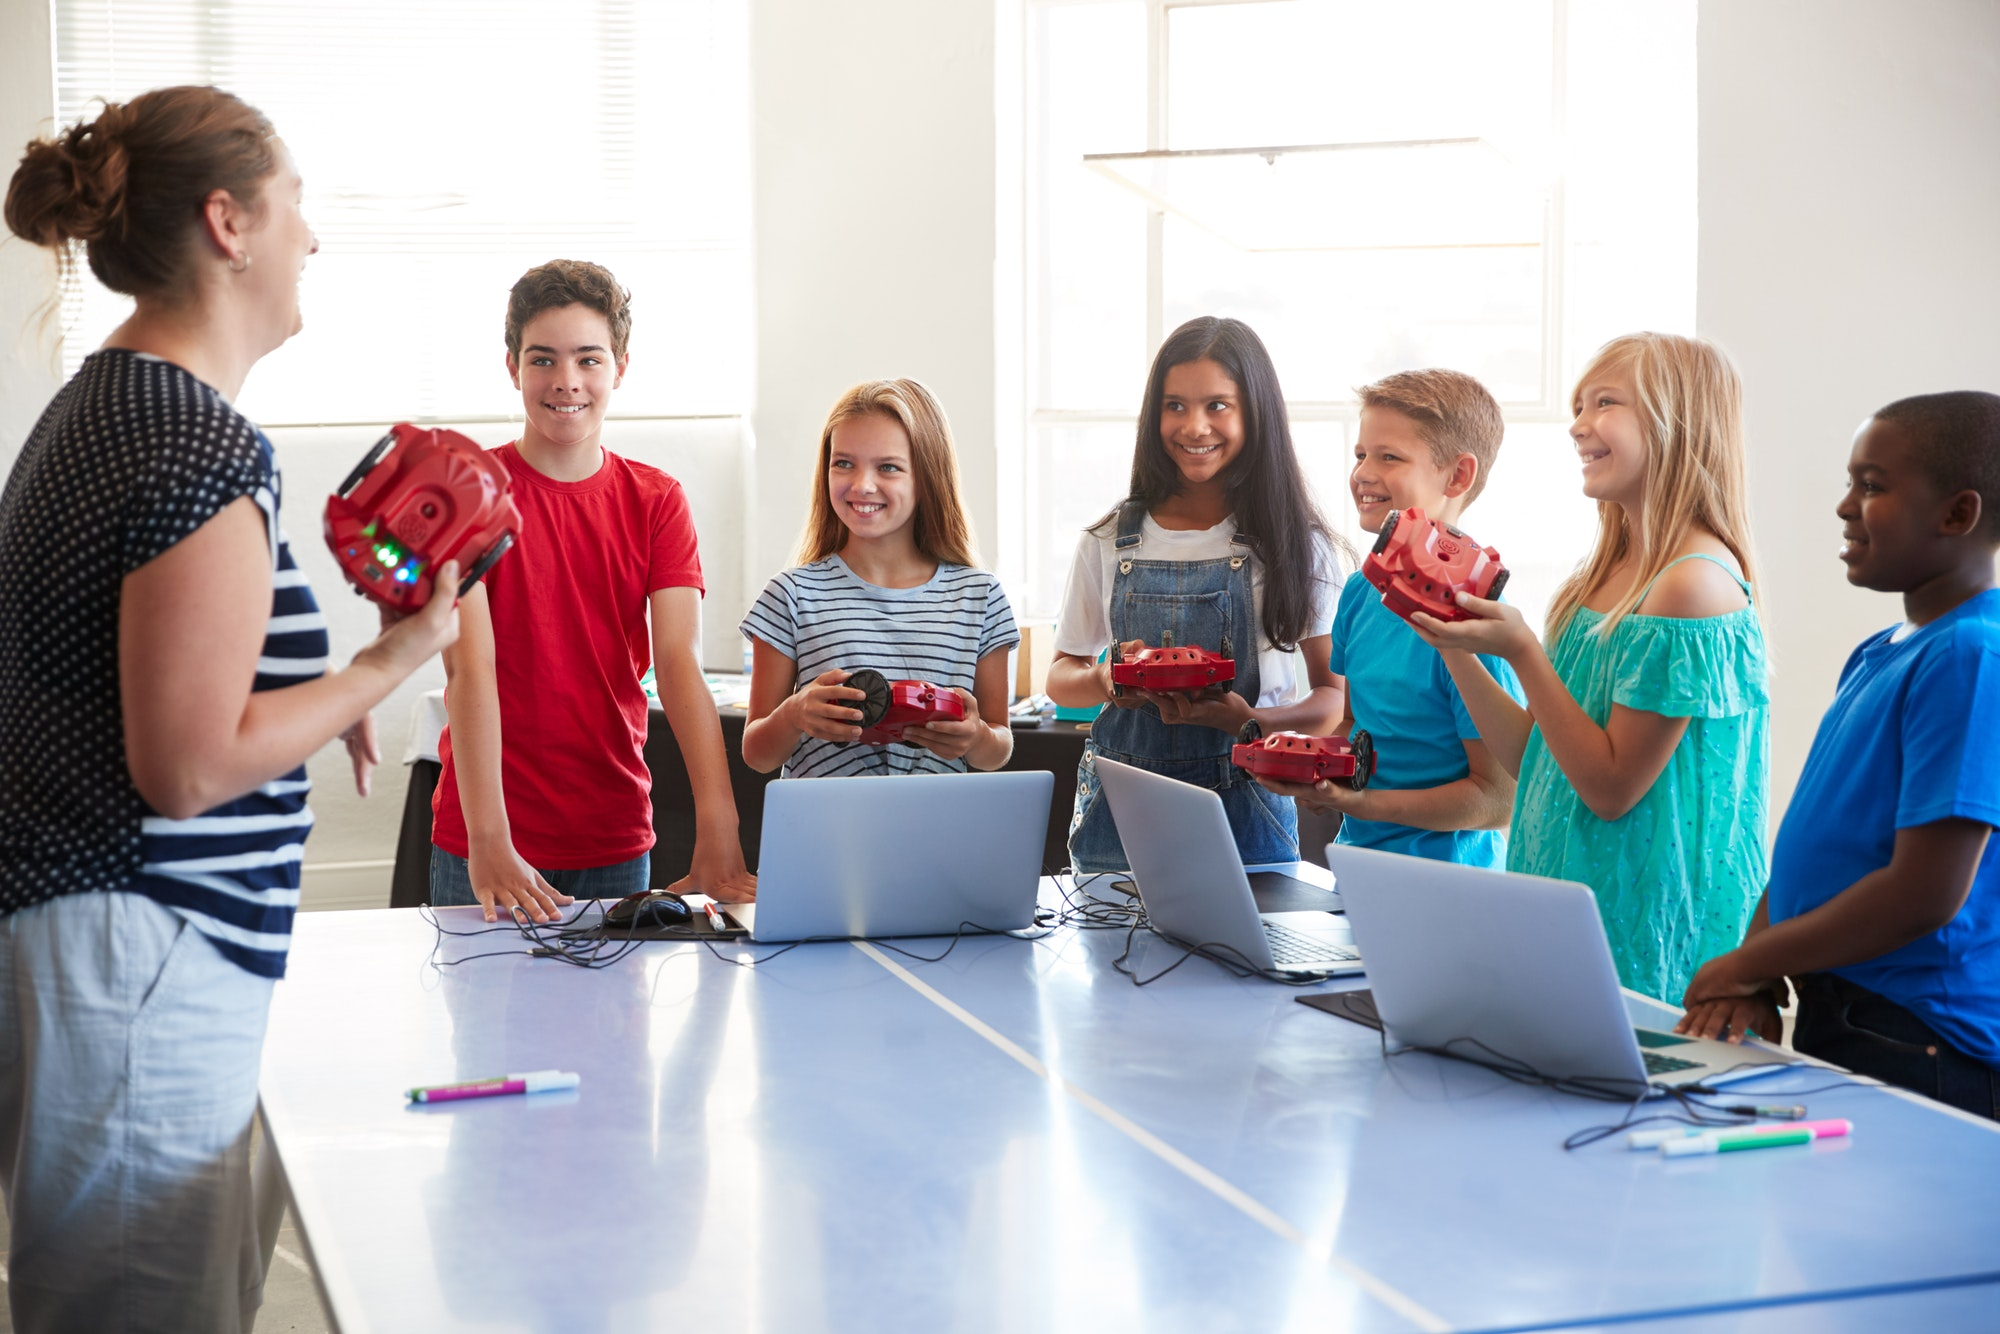 group-of-students-in-after-school-computer-coding-class-learning-to-program-robot-vehicle-10.jpg